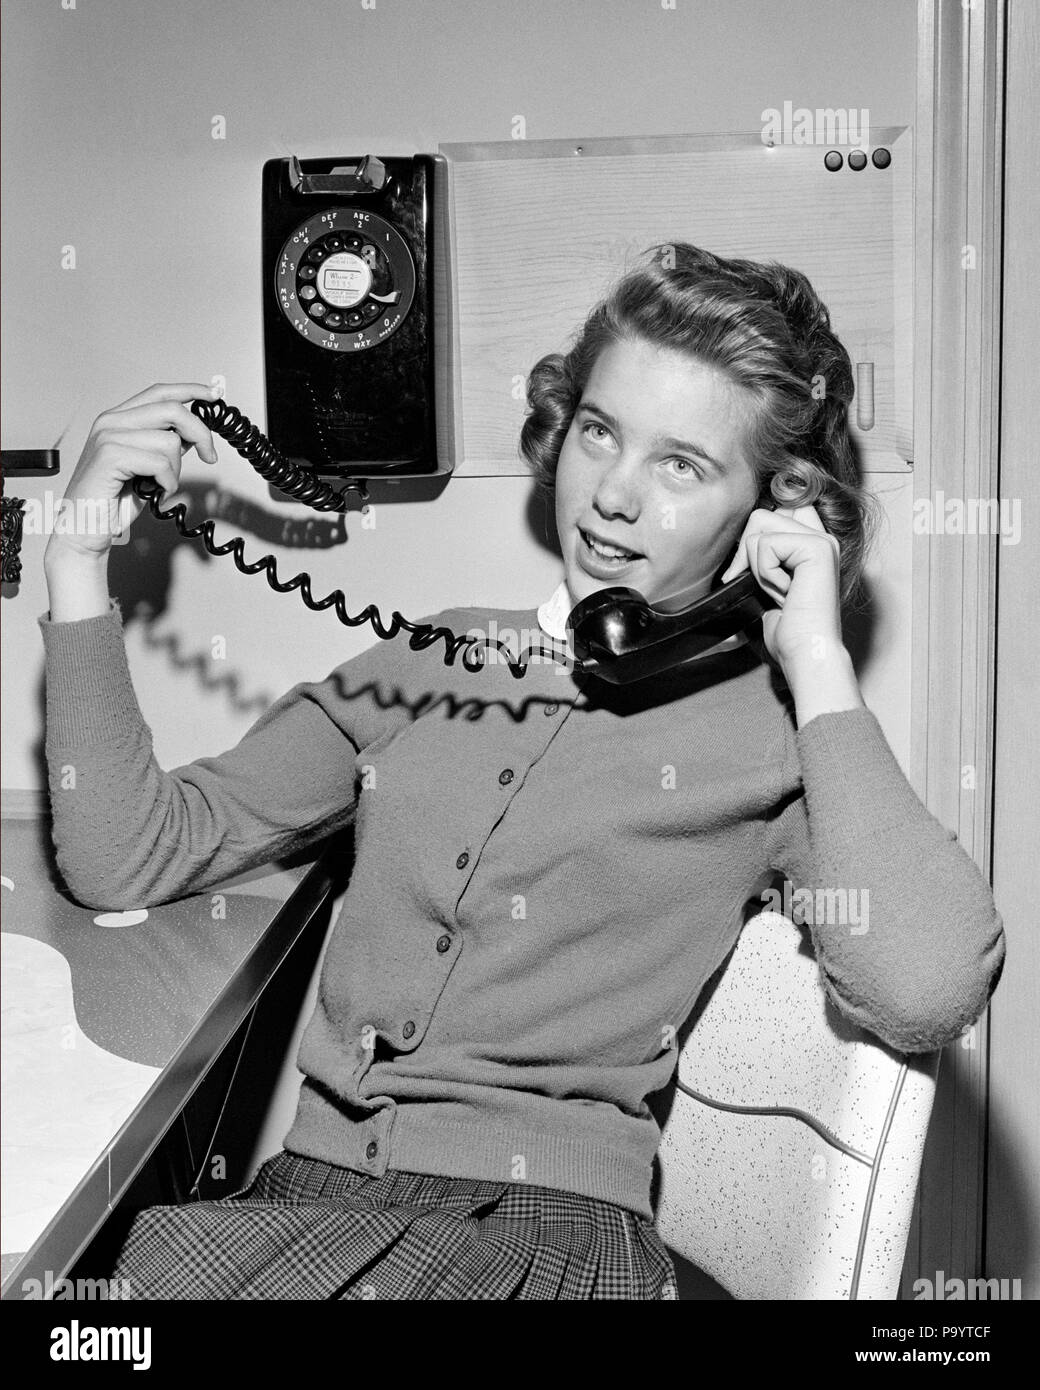 1950s TEENAGE GIRL TALKING ON WALL MOUNTED DIAL TELEPHONE HOLDING THE COILED PHONE CORD TO THE HANDSET - j9197 HAR001 HARS FRIENDSHIP HALF-LENGTH ADOLESCENT PERSONS TEENAGE GIRL ENTERTAINMENT GOSSIPING EXPRESSIONS B&W CORD FREEDOM DIAL HAPPINESS EXCITEMENT RECREATION HOPEFUL PHONES CONNECTION TELEPHONES COILED TEENAGED HANDSET JUVENILES MOUNTED BLACK AND WHITE CAUCASIAN ETHNICITY HAR001 OLD FASHIONED WALL PHONE - Stock Image